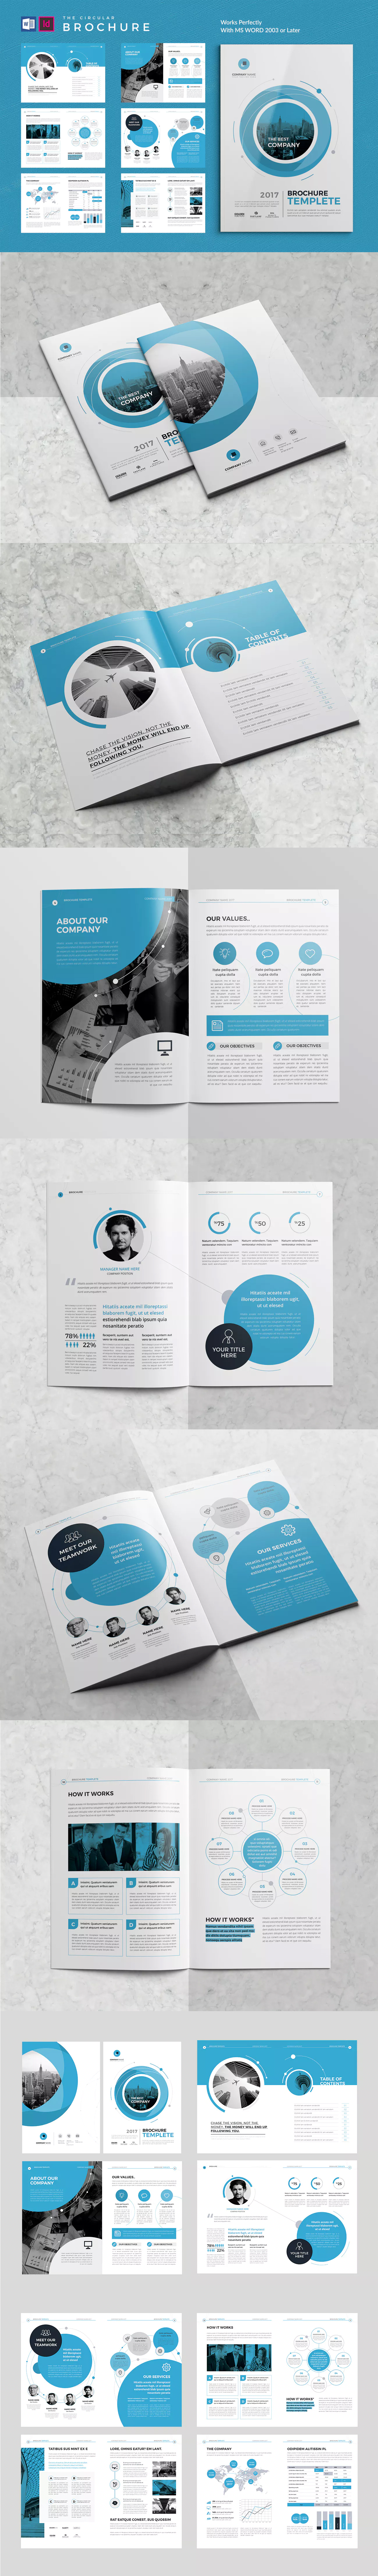 Co Brochure Template InDesign INDD MS Word A4 | Dossier | Pinterest ...